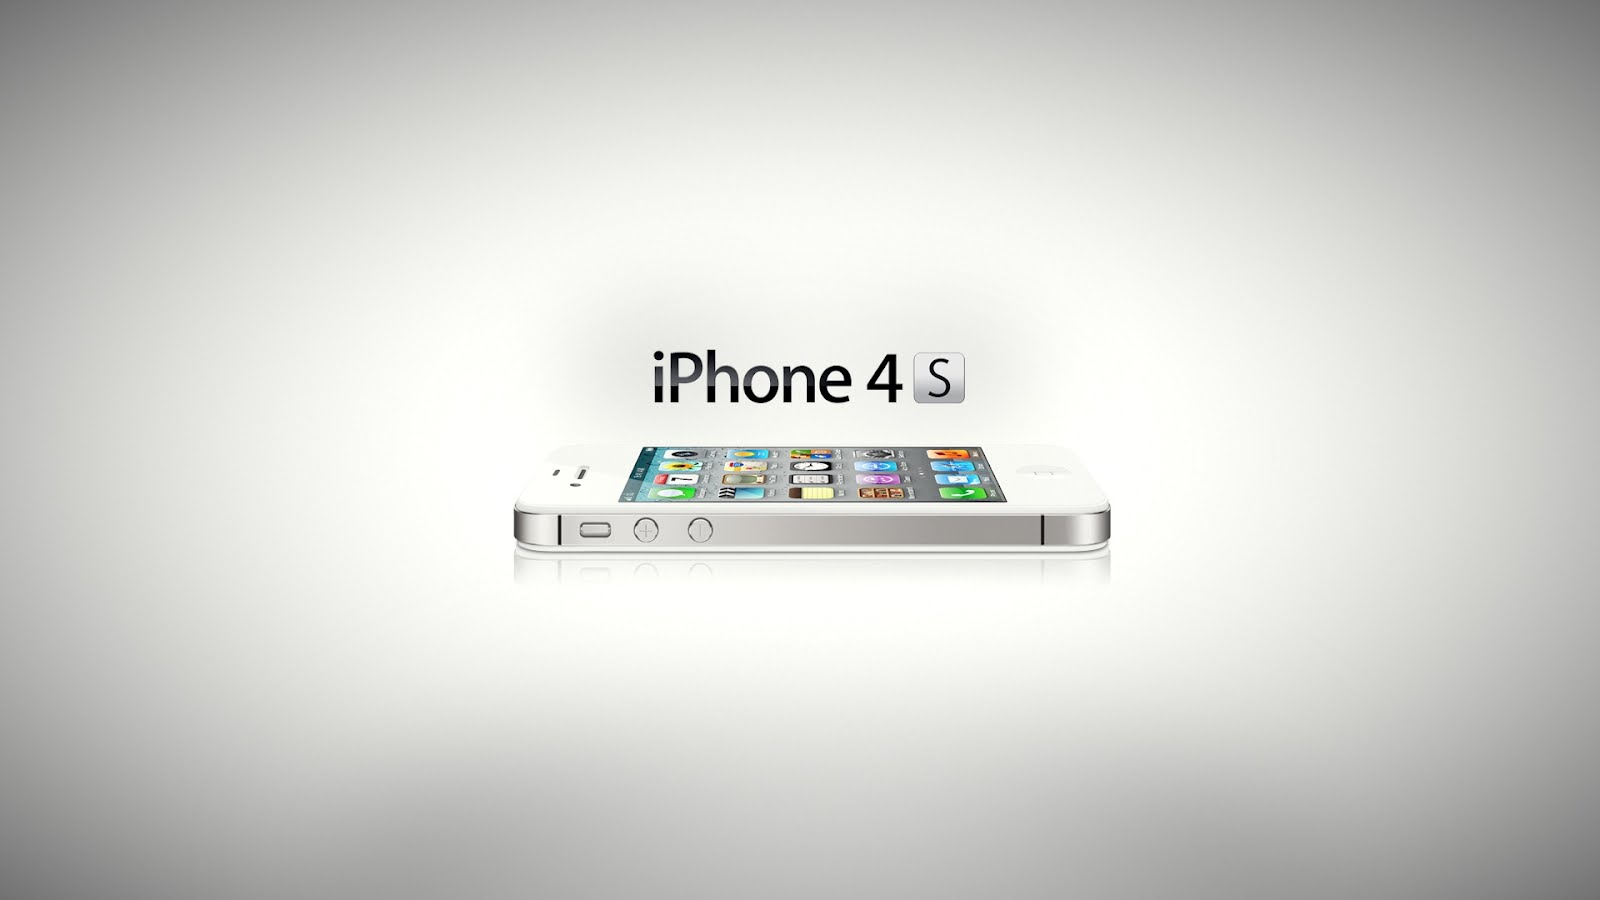 iPhone 4S, HD Wallpaper